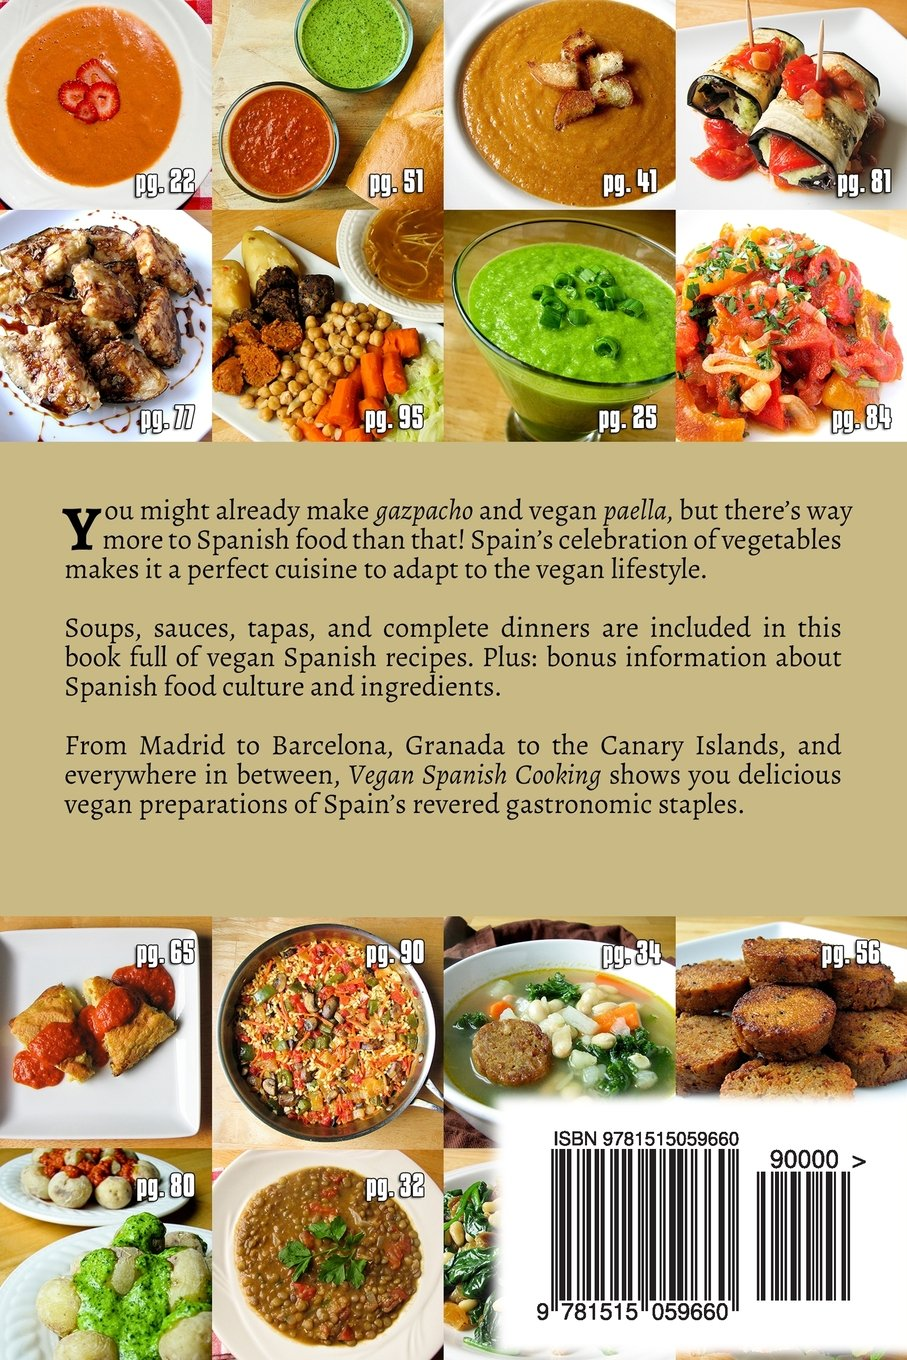 Vegan spanish cooking andy luttrell 9781515059660 amazon books forumfinder Gallery